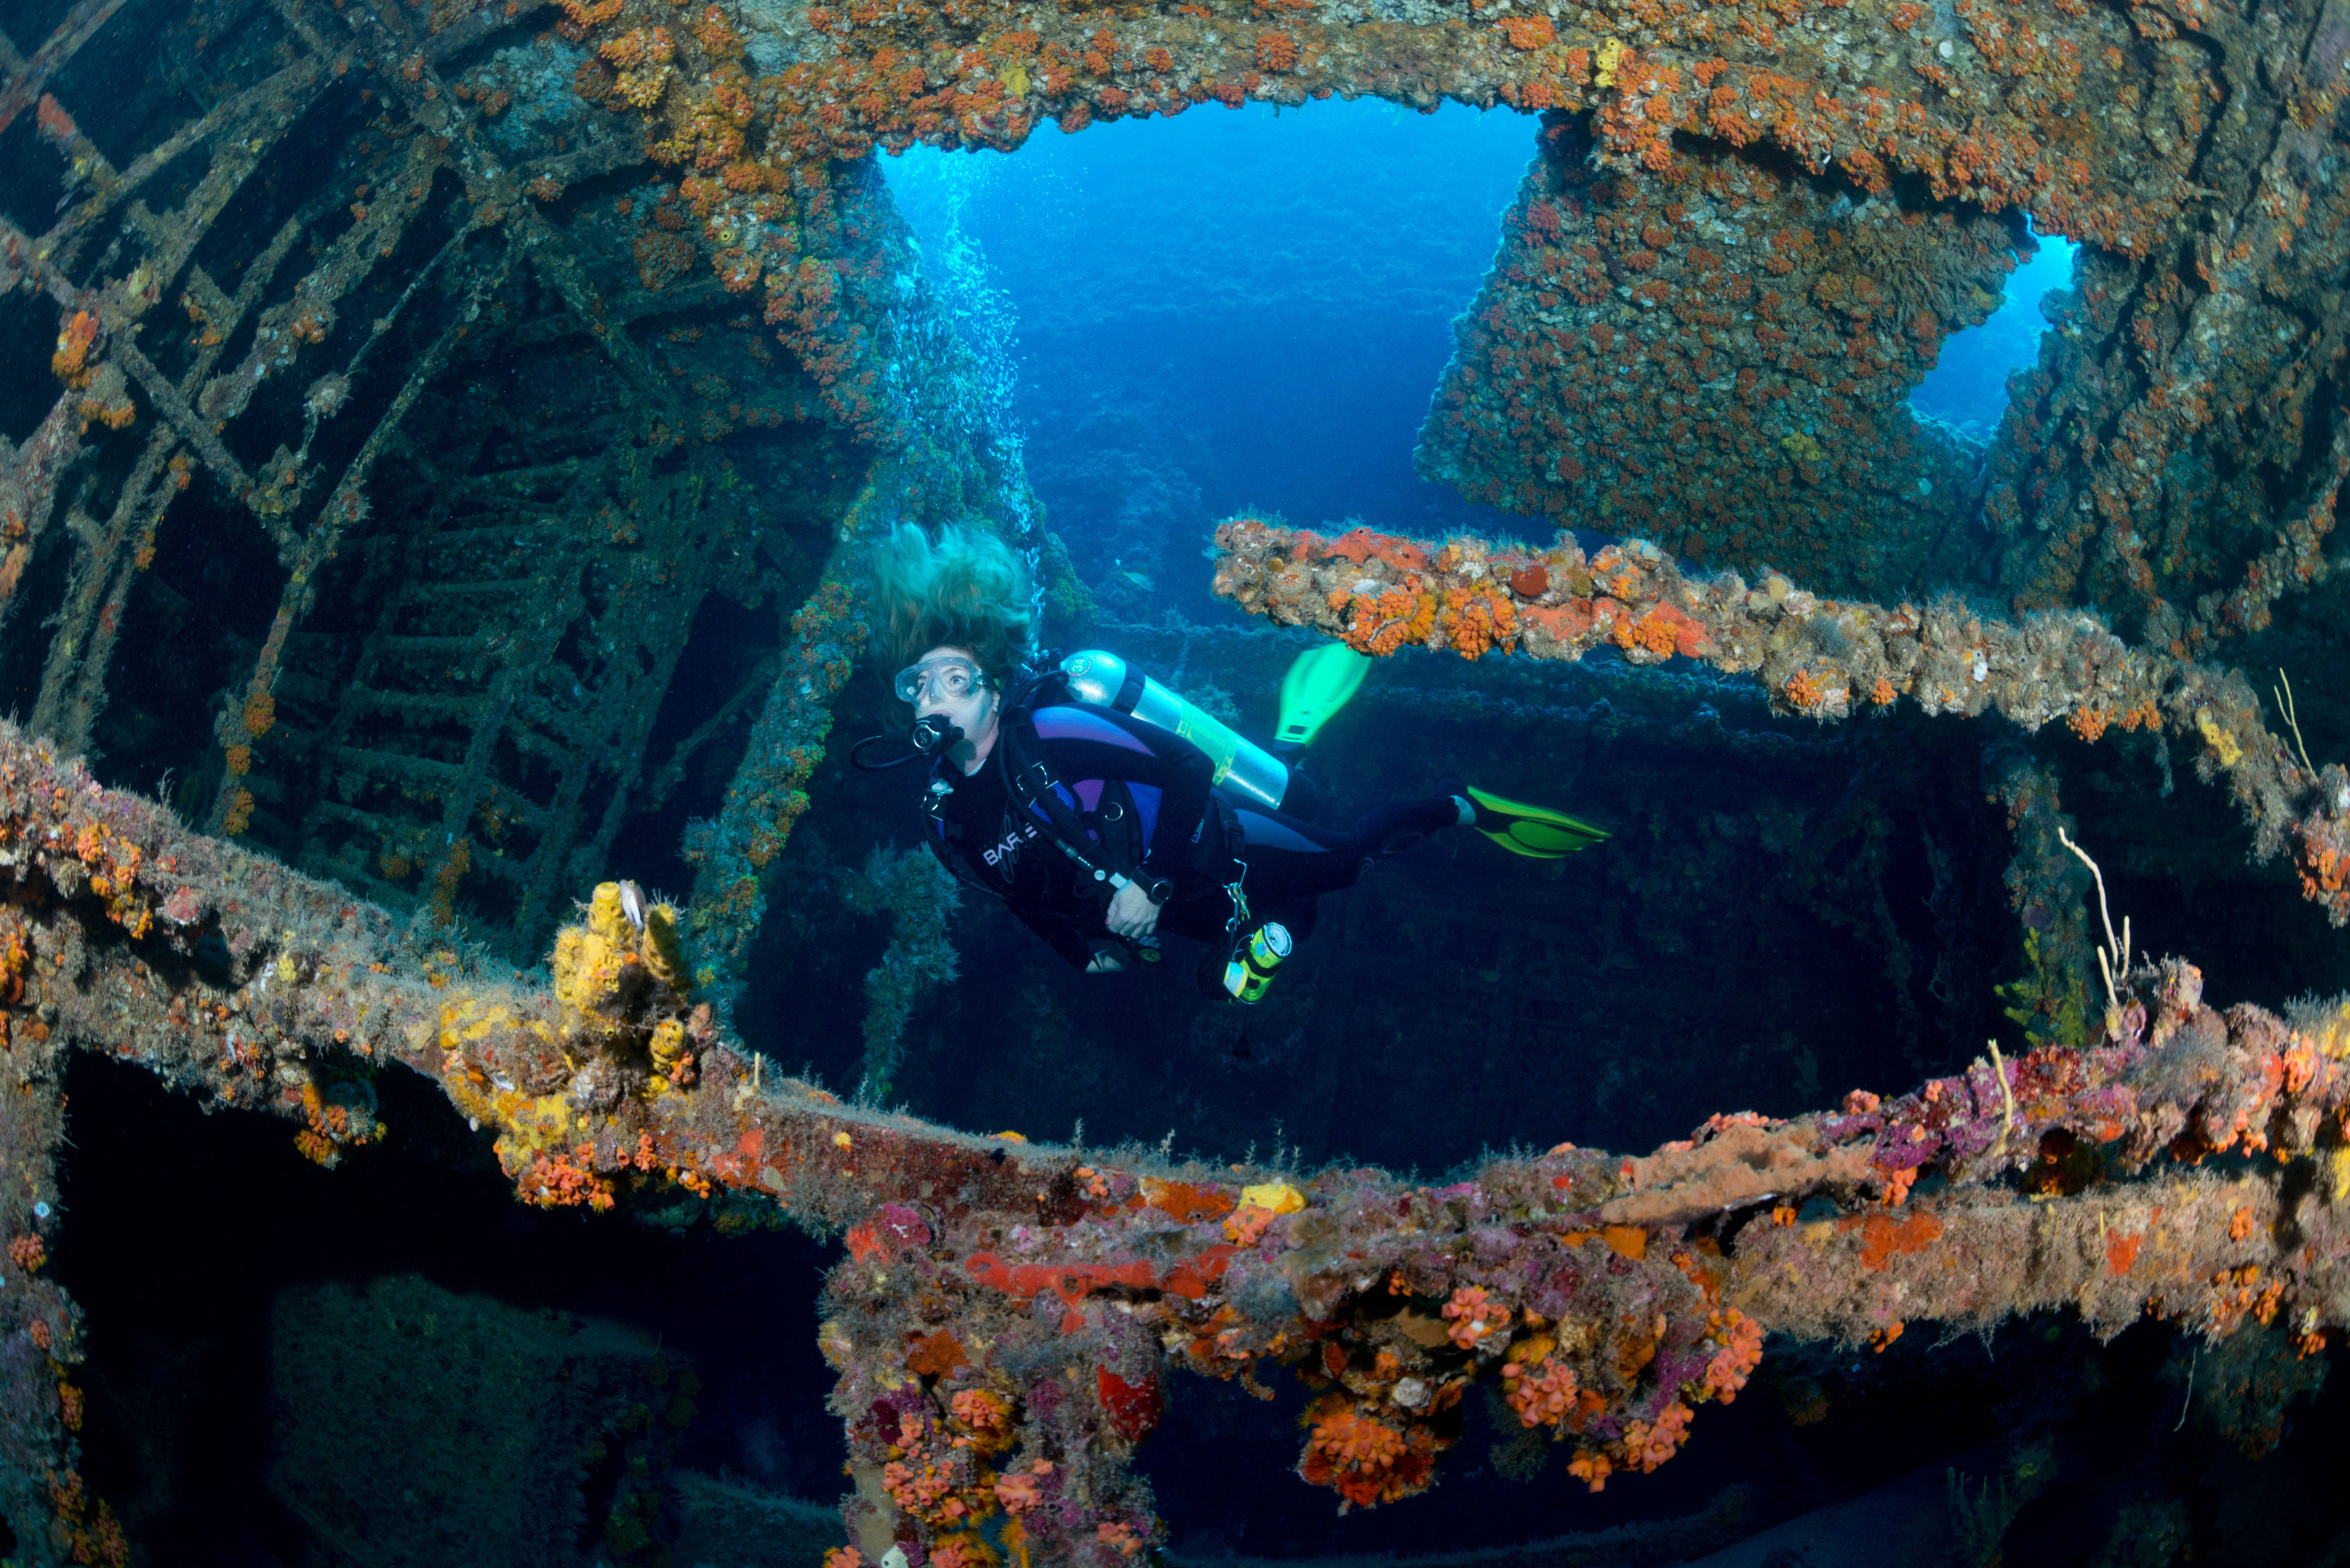 A female scuba diver penetrates a wreck near the coast of Pompano Beach, Florida